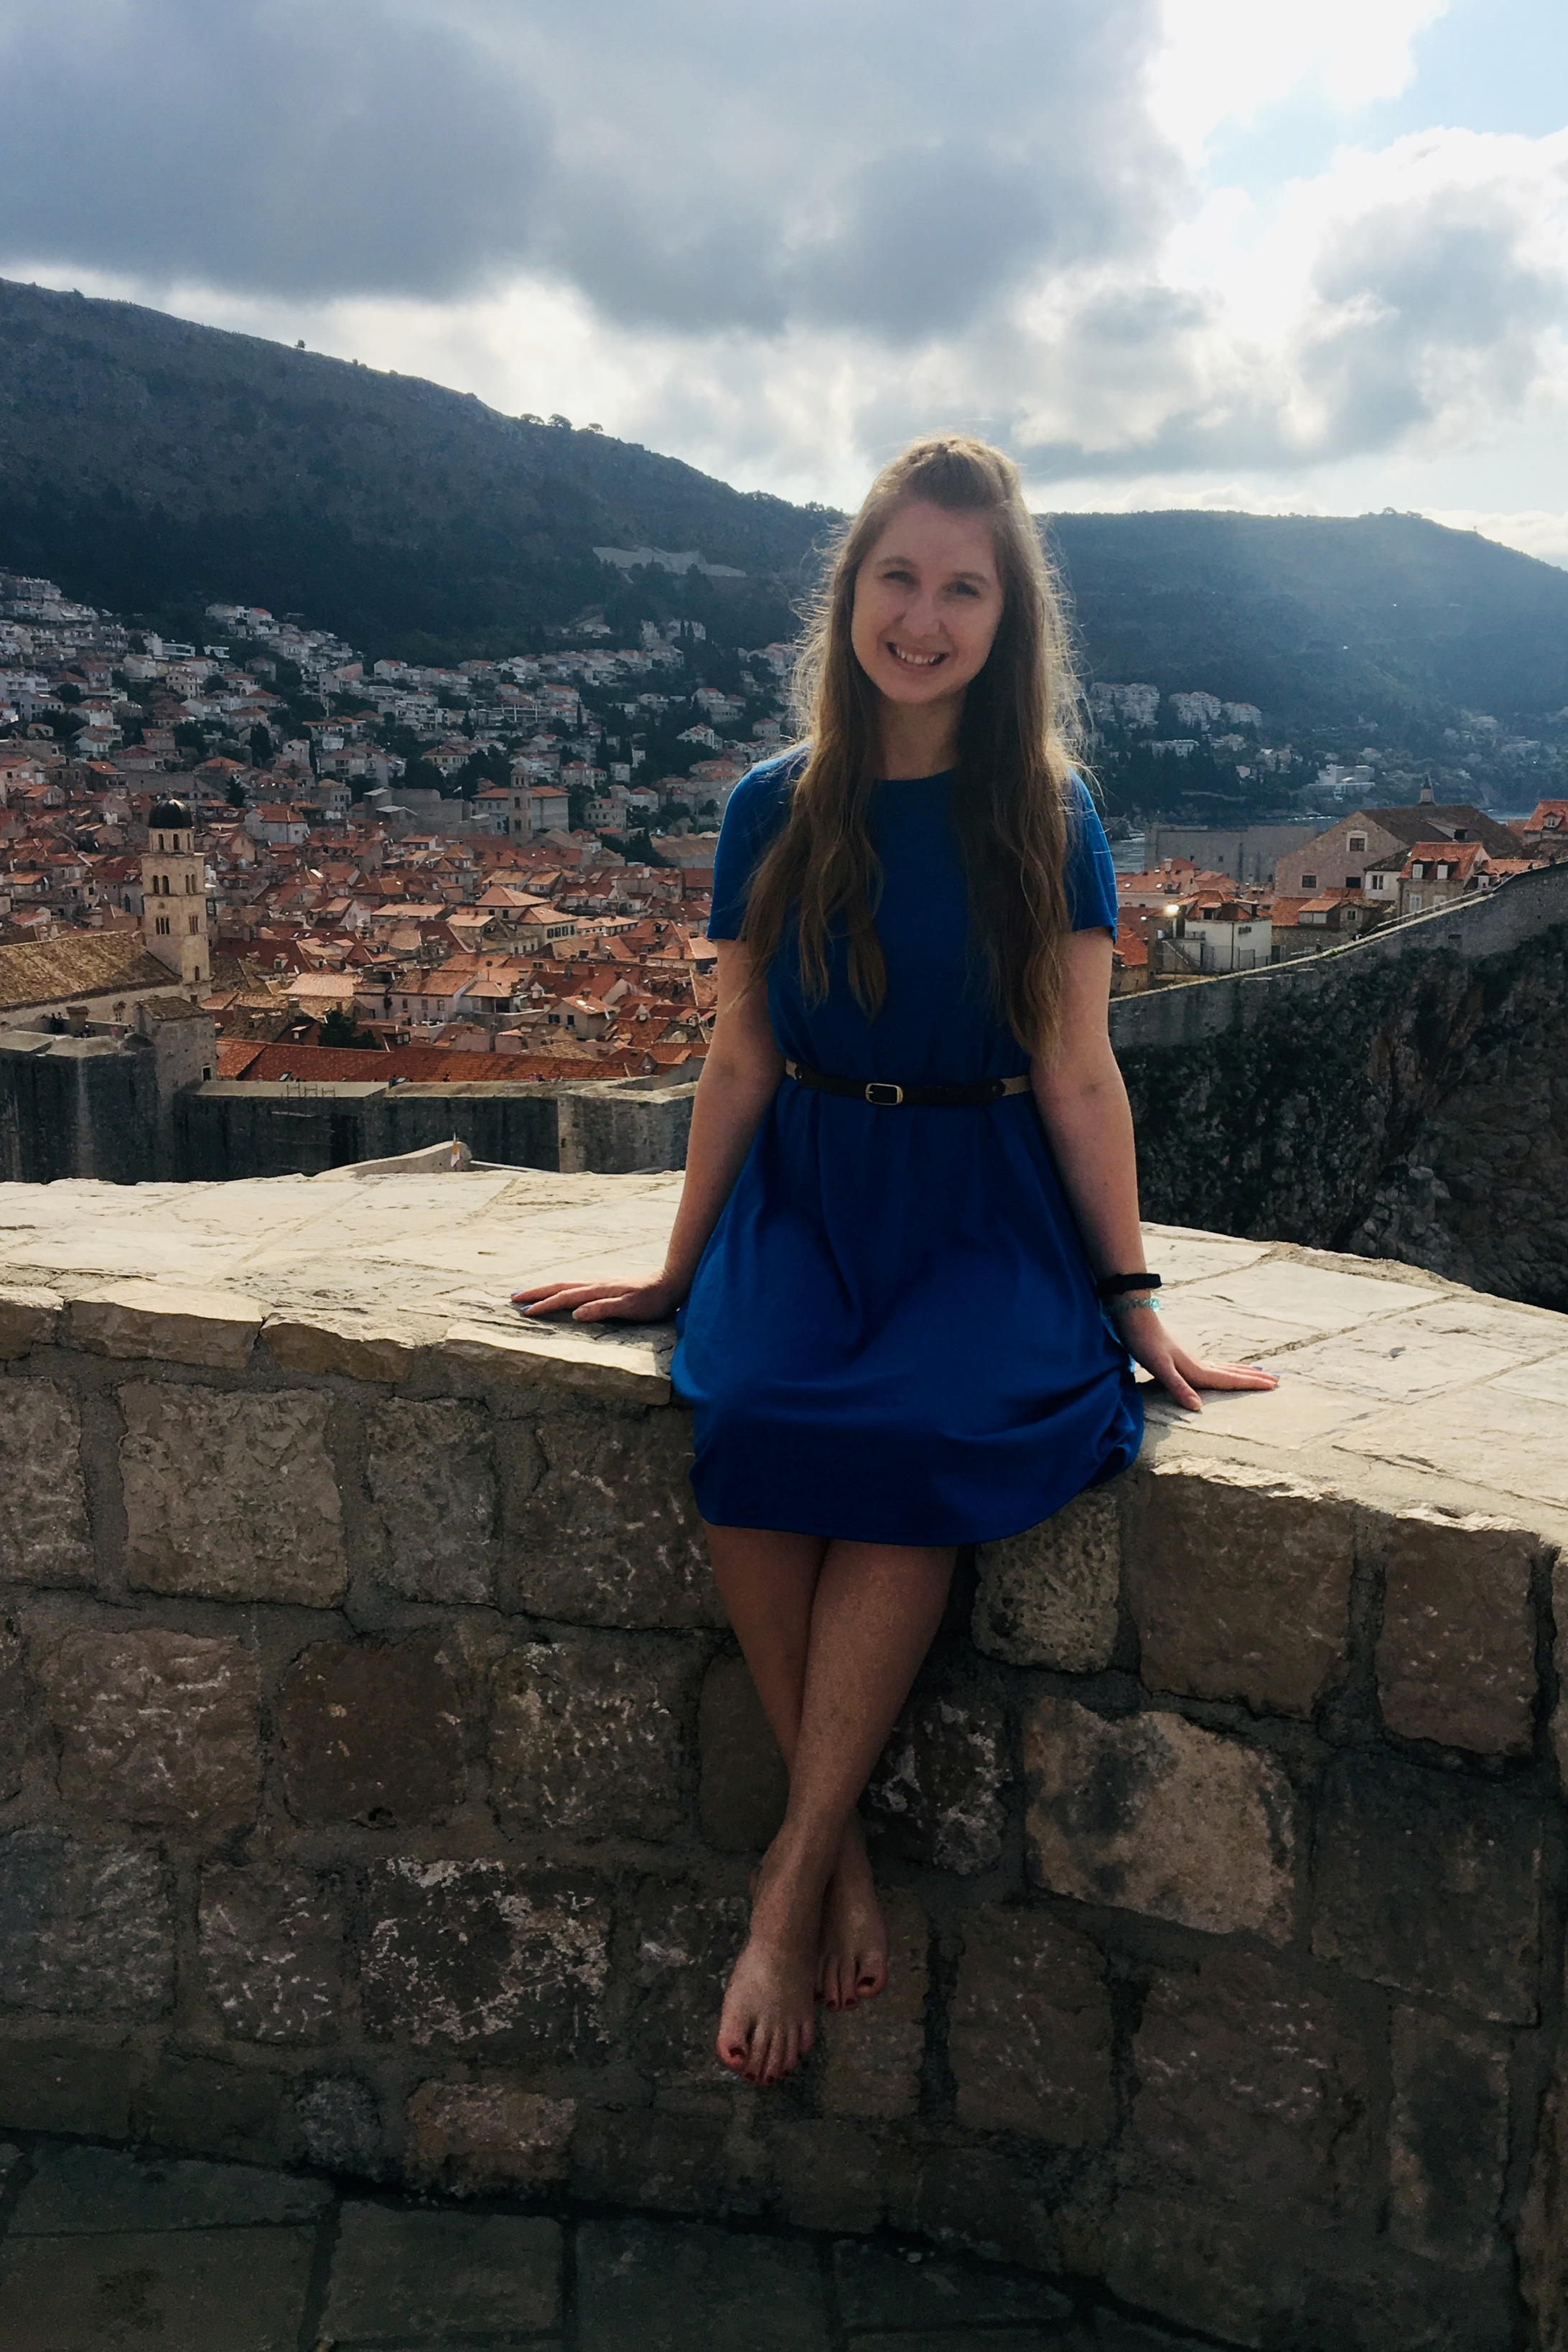 Sarah and an amazing view in Croatia!